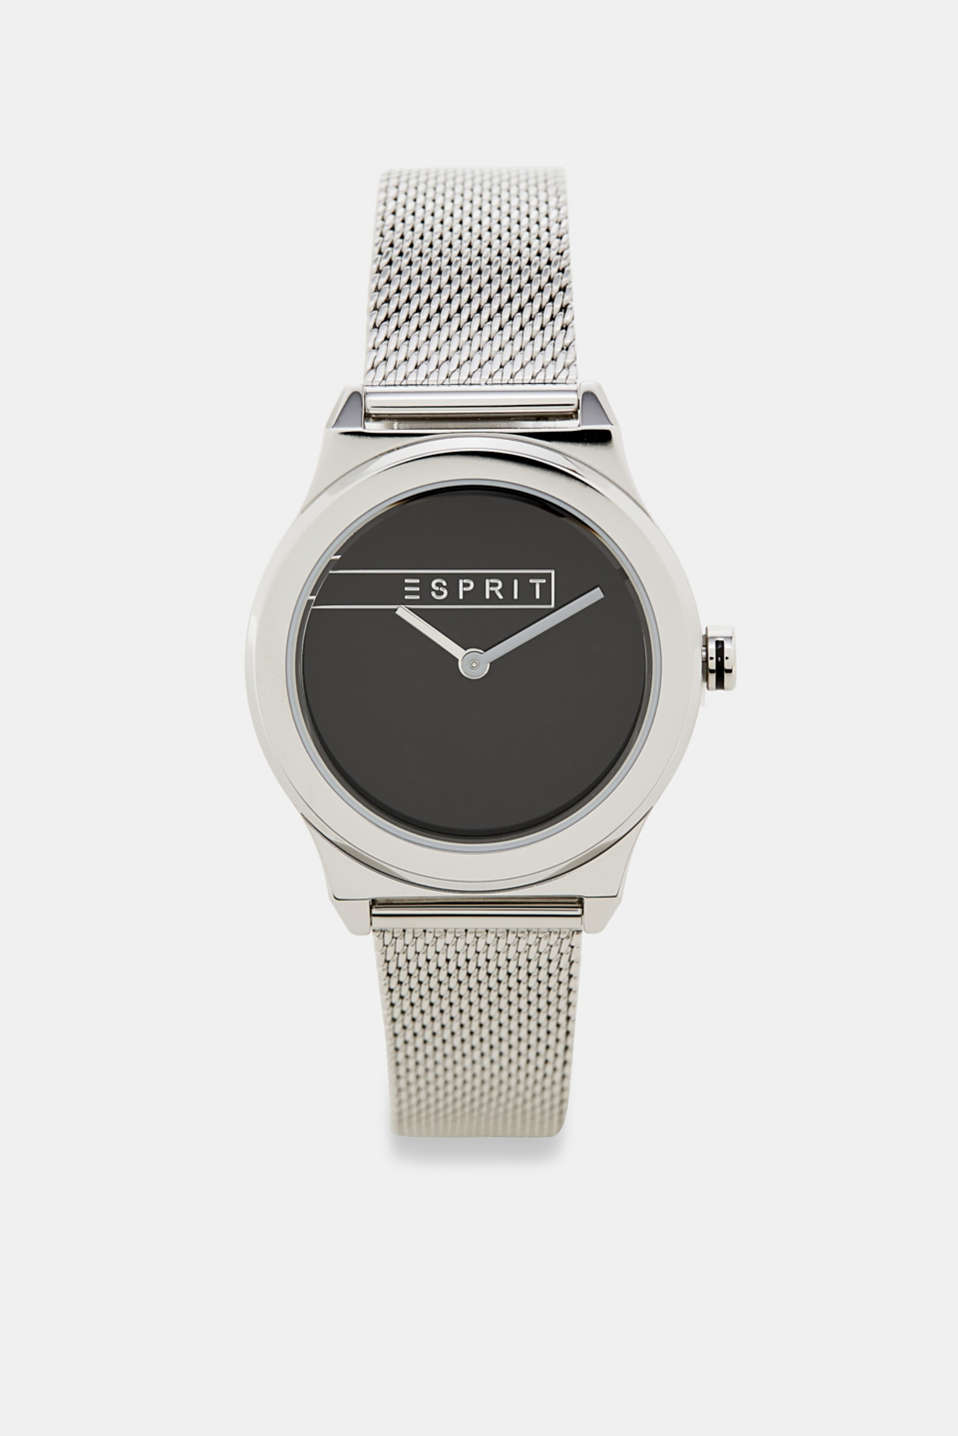 Esprit - Stainless steel watch with a mirrored dial